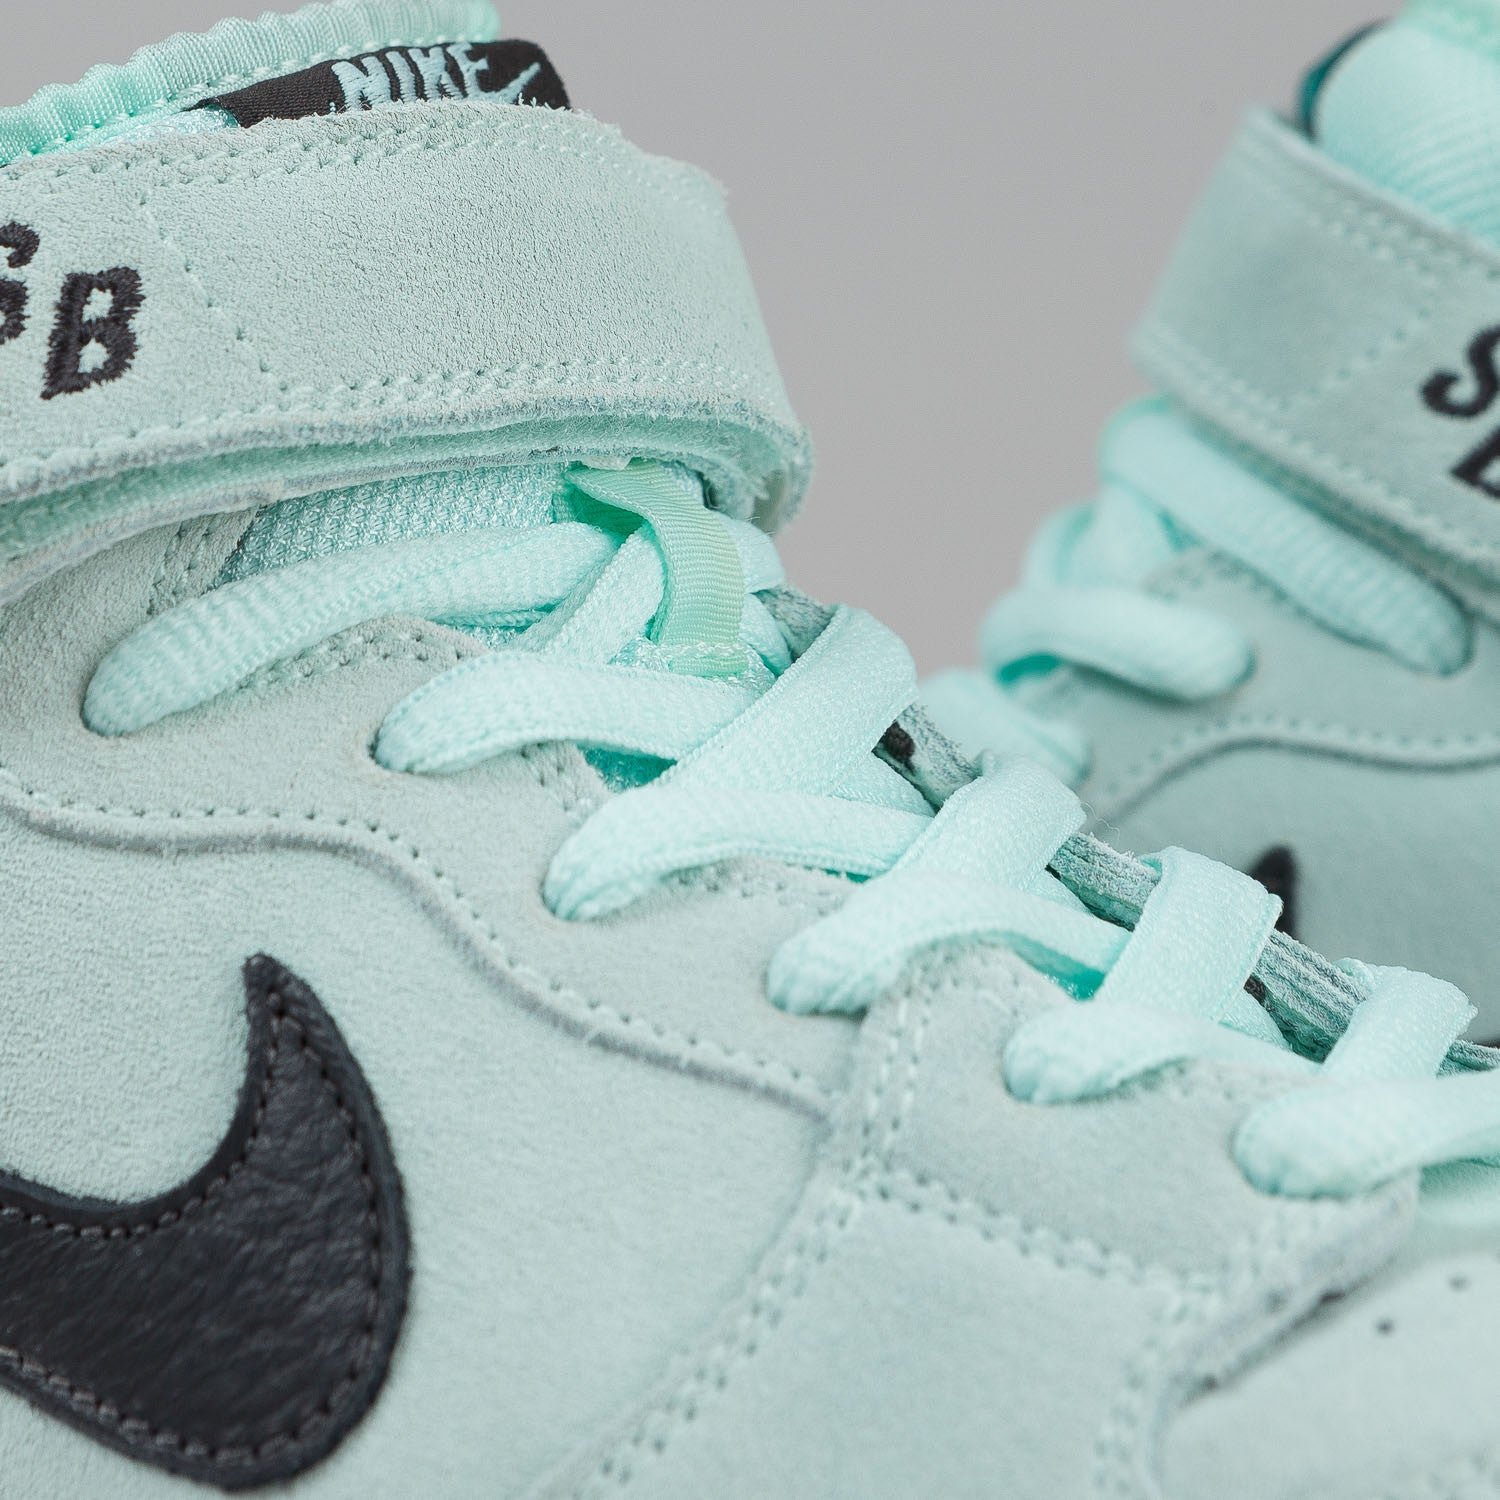 Nike SB Dunk Mid Pro Shoes - Ice Green / Dark Charcoal